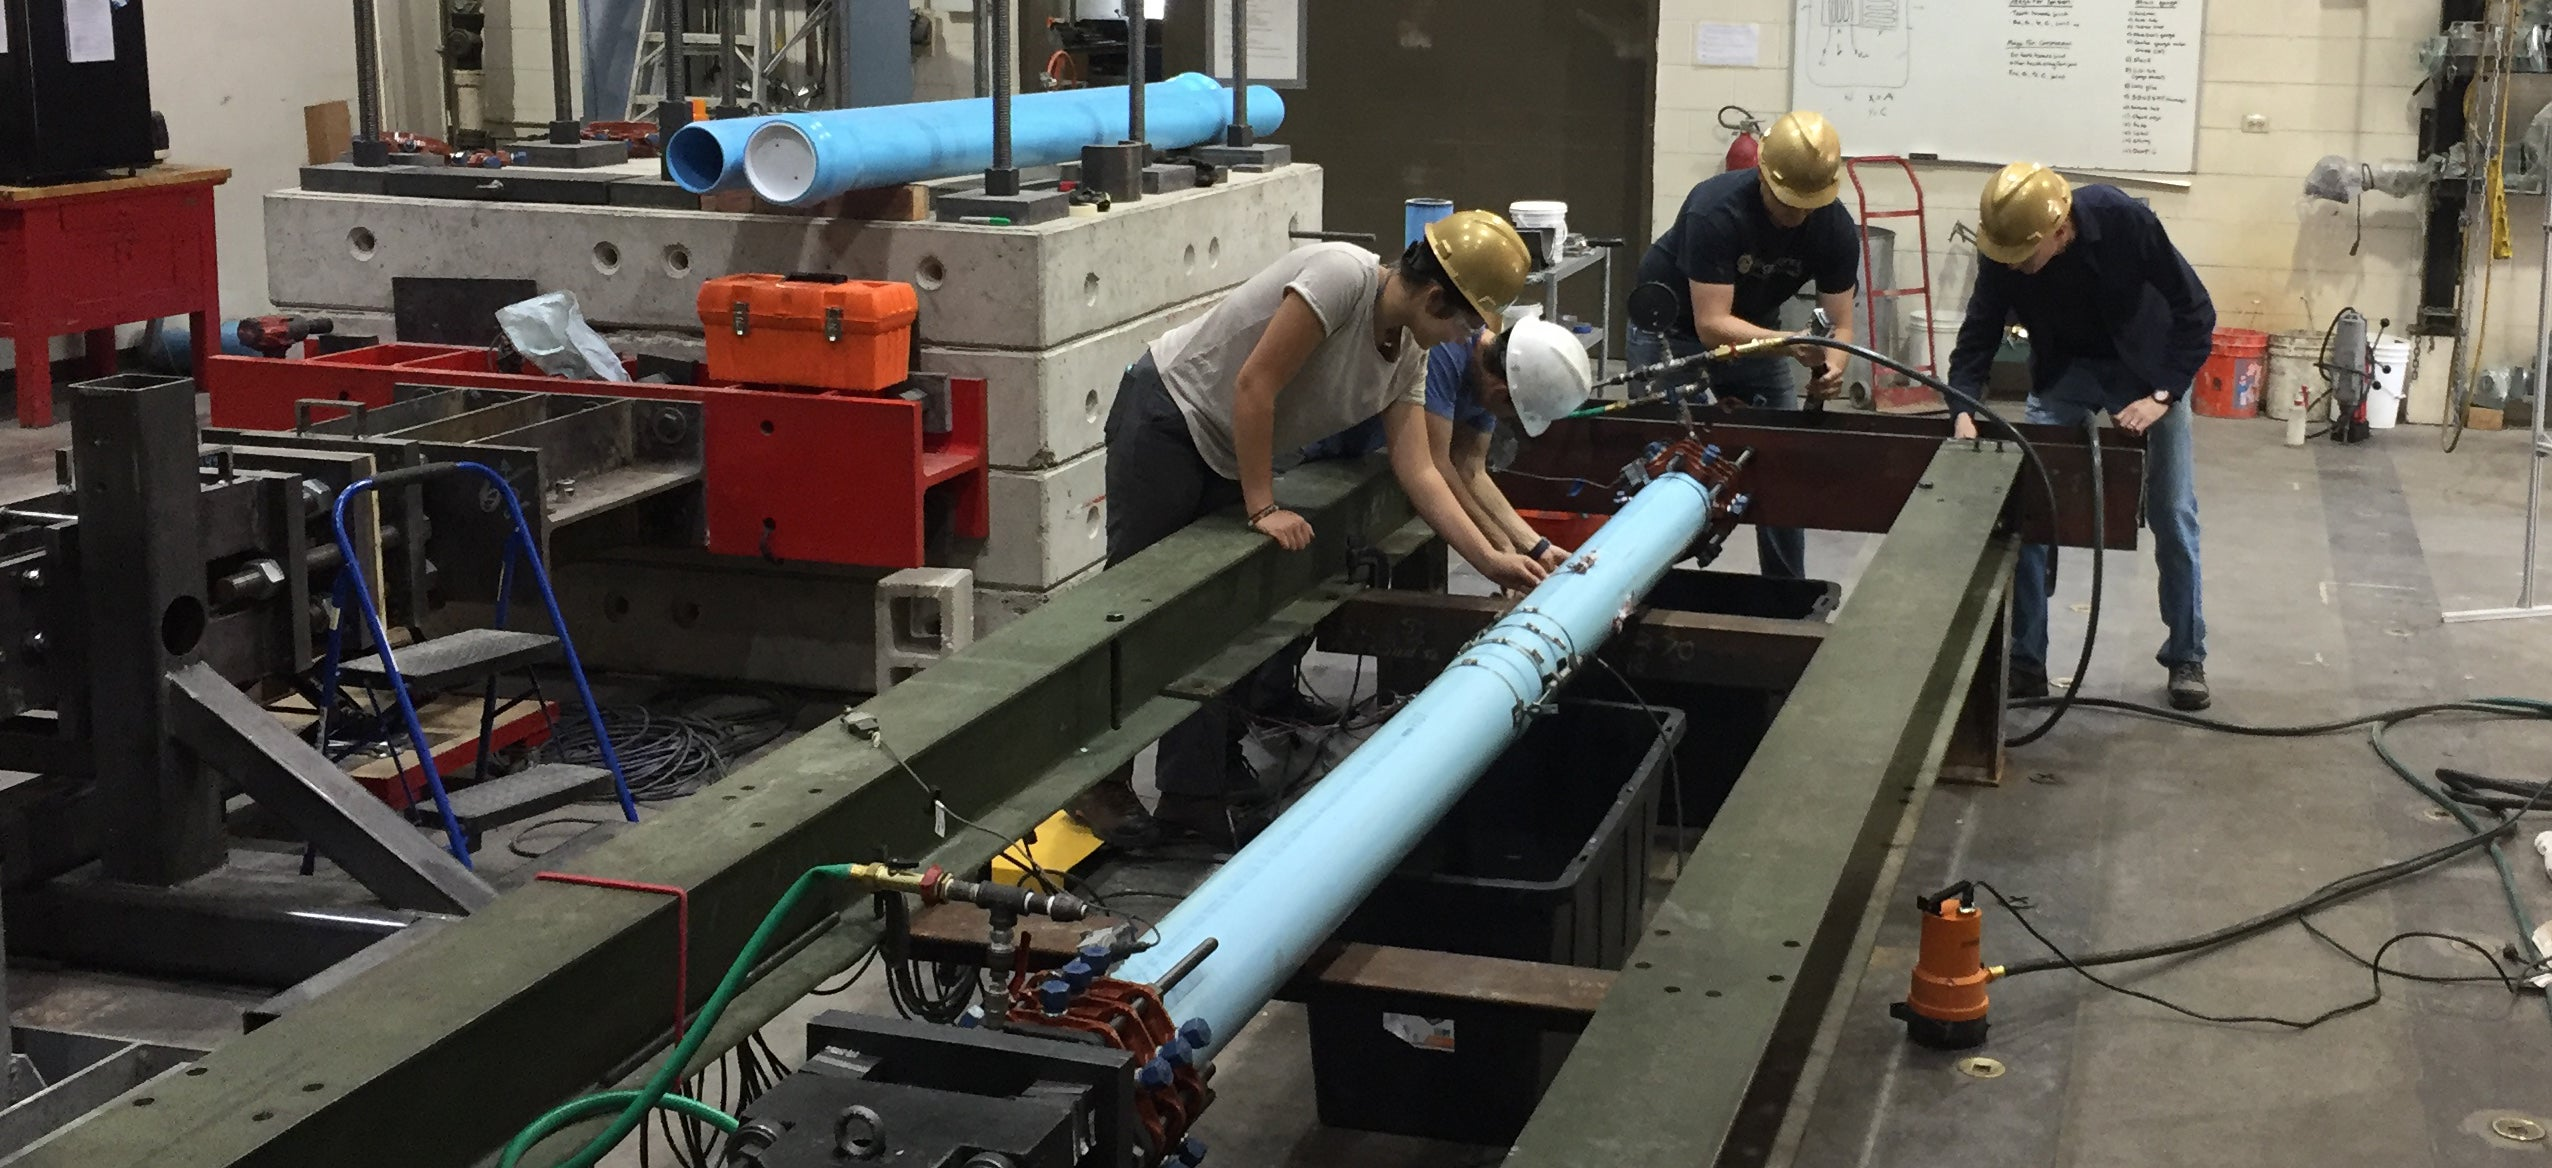 Researchers work on a pipe testing project in the CIEST lab